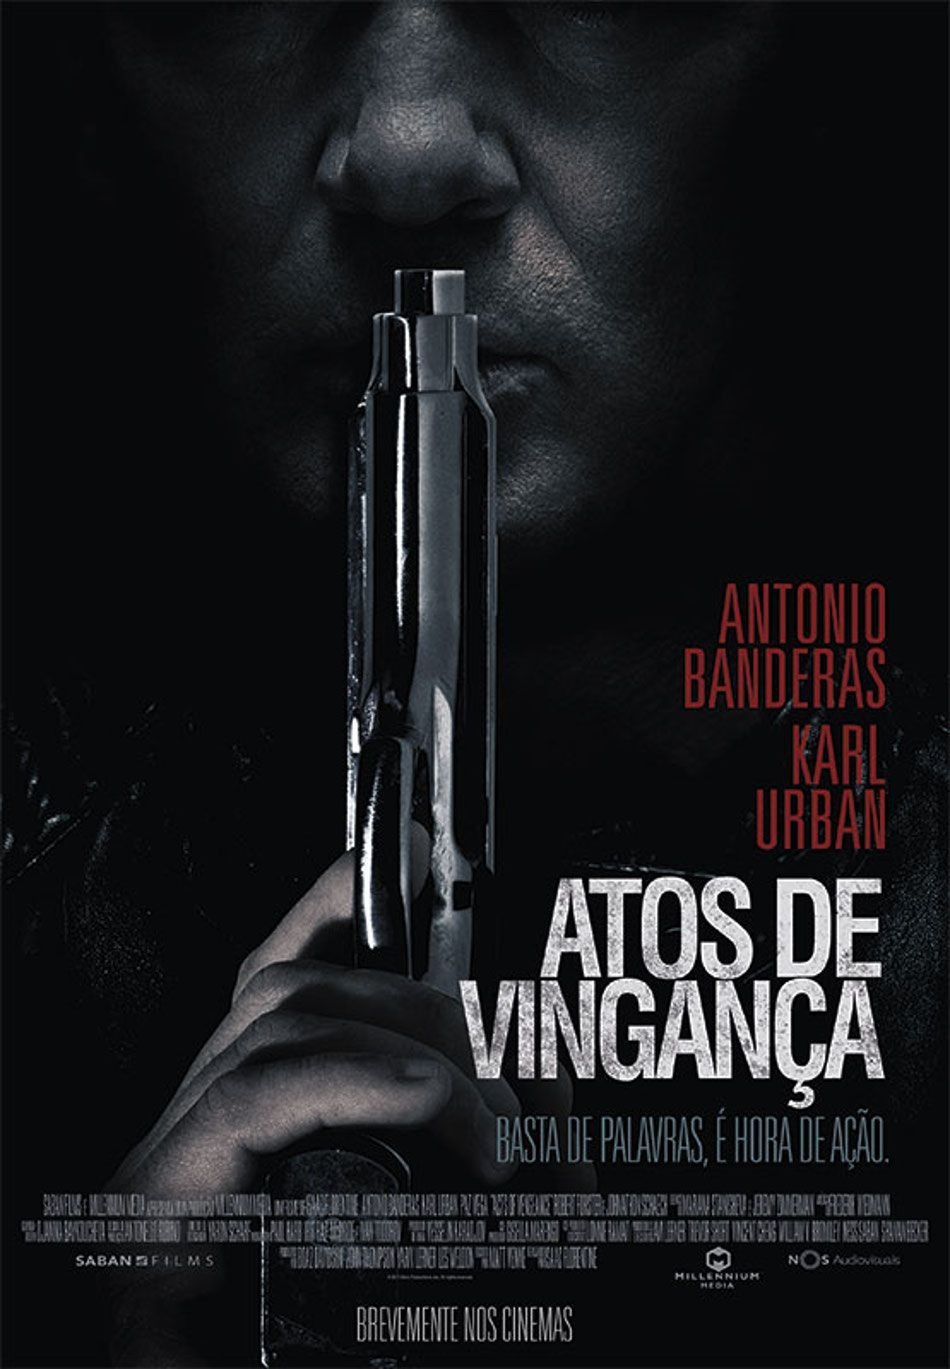 Acts of Vengeance Antonio Banderas